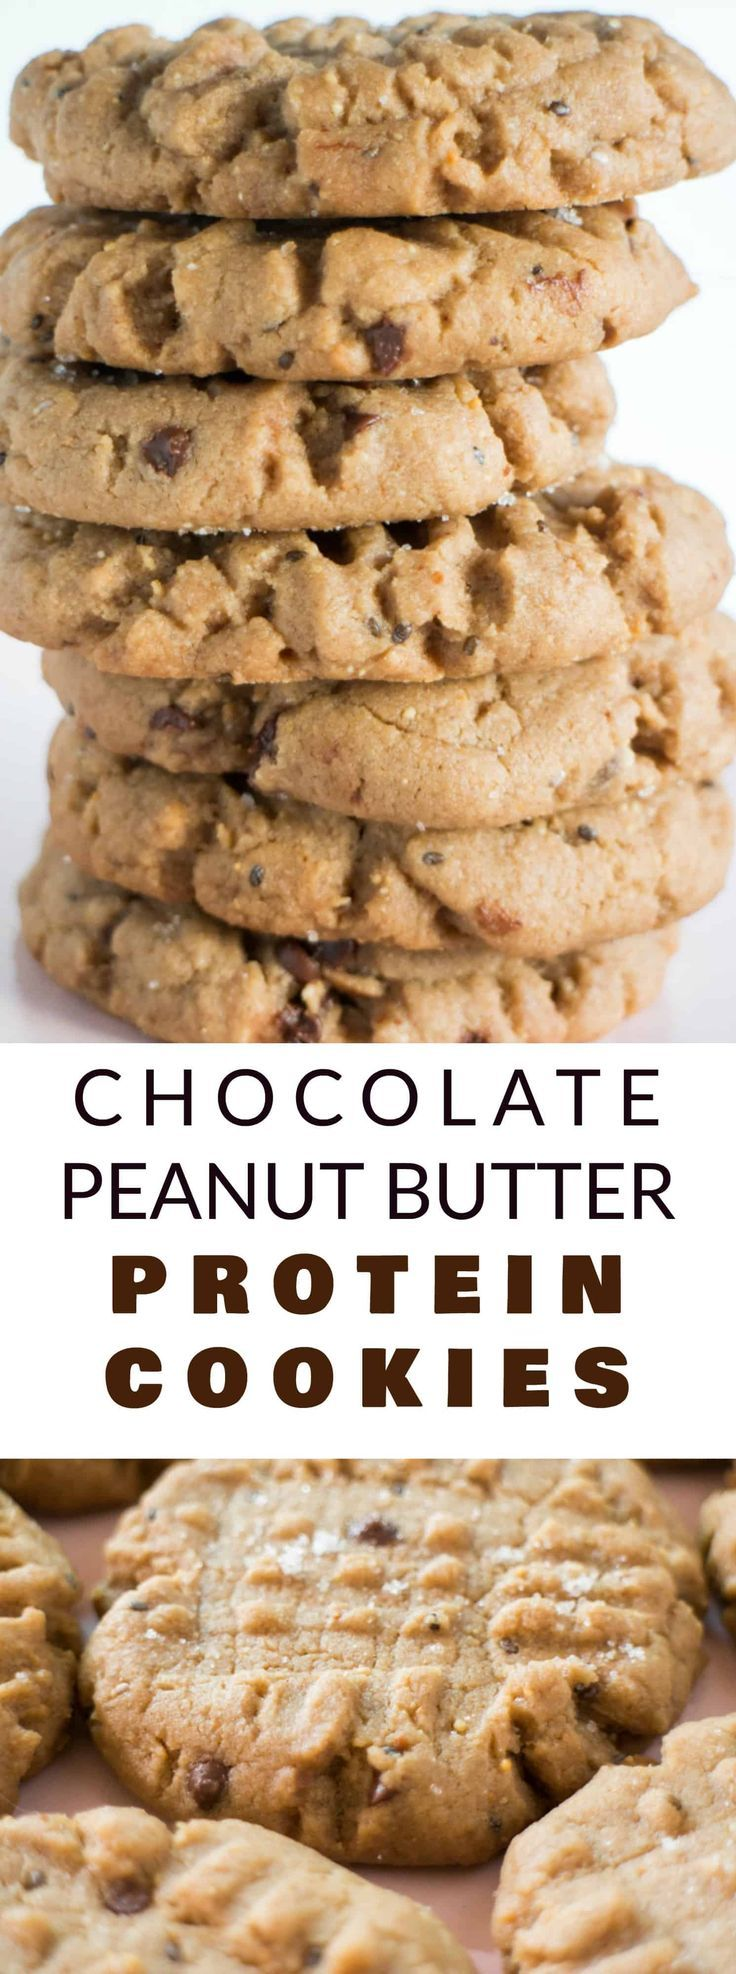 Peanut Butter Protein Cookie Recipe